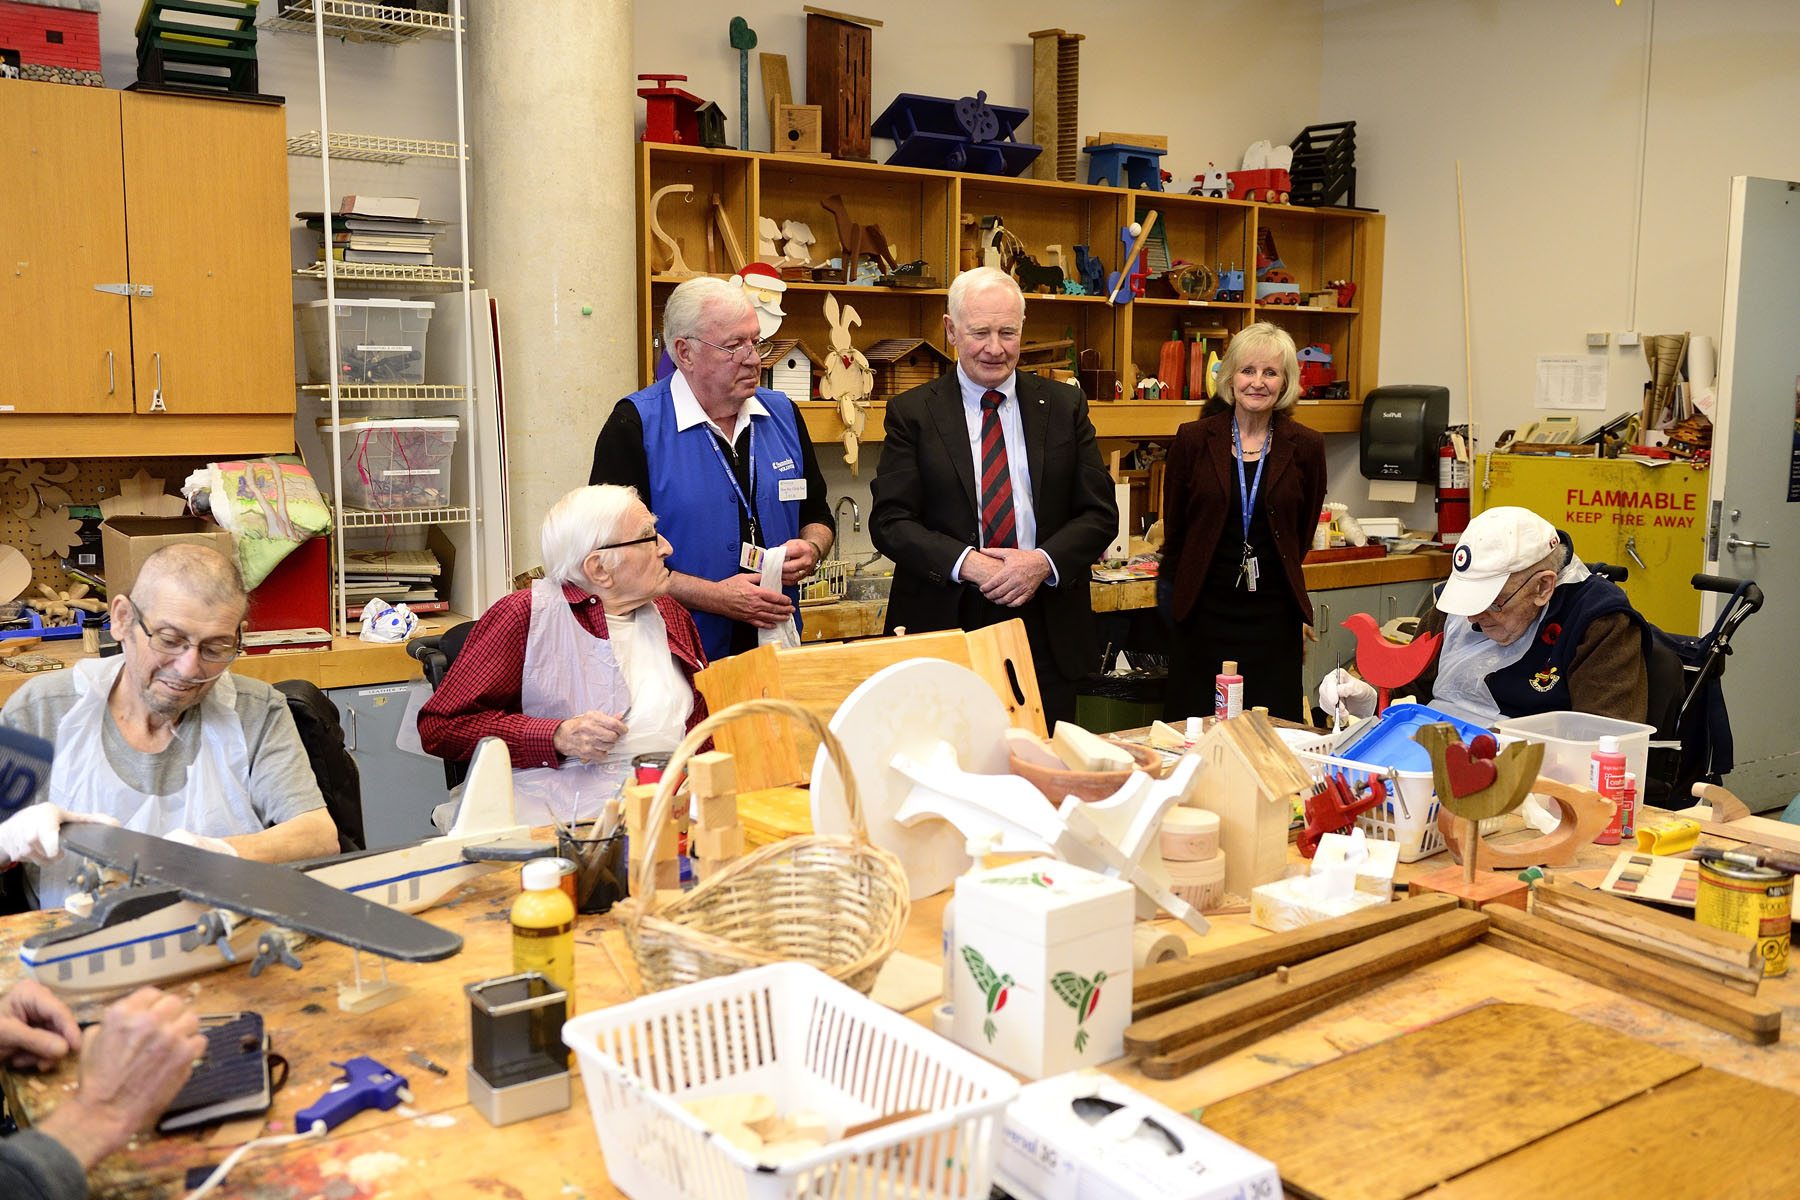 While in Toronto, the Governor General, as commander-in-chief of Canada, toured the Sunnybrook Veterans Centre, including the woodworking studio.